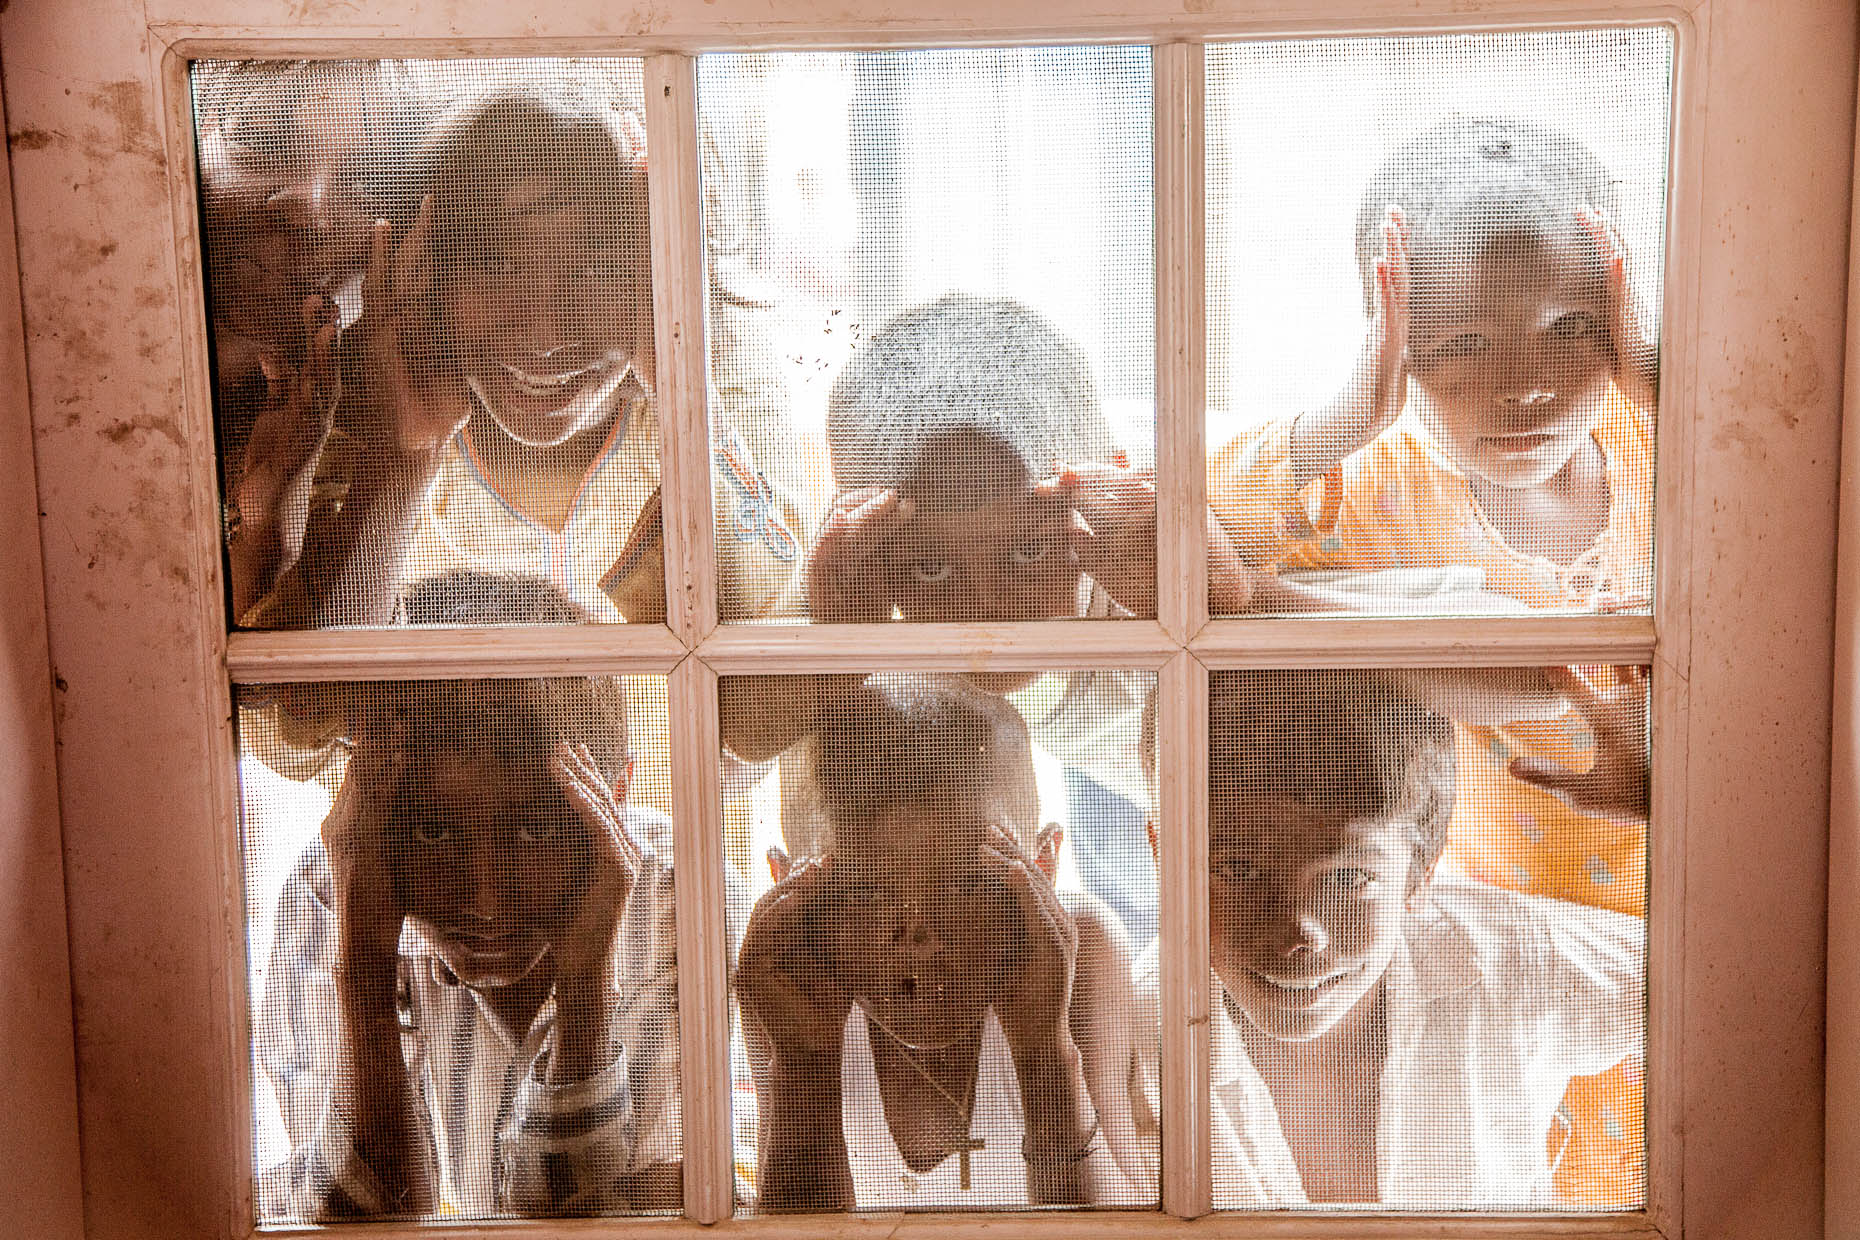 Children-in-Pakistan-look-in-window